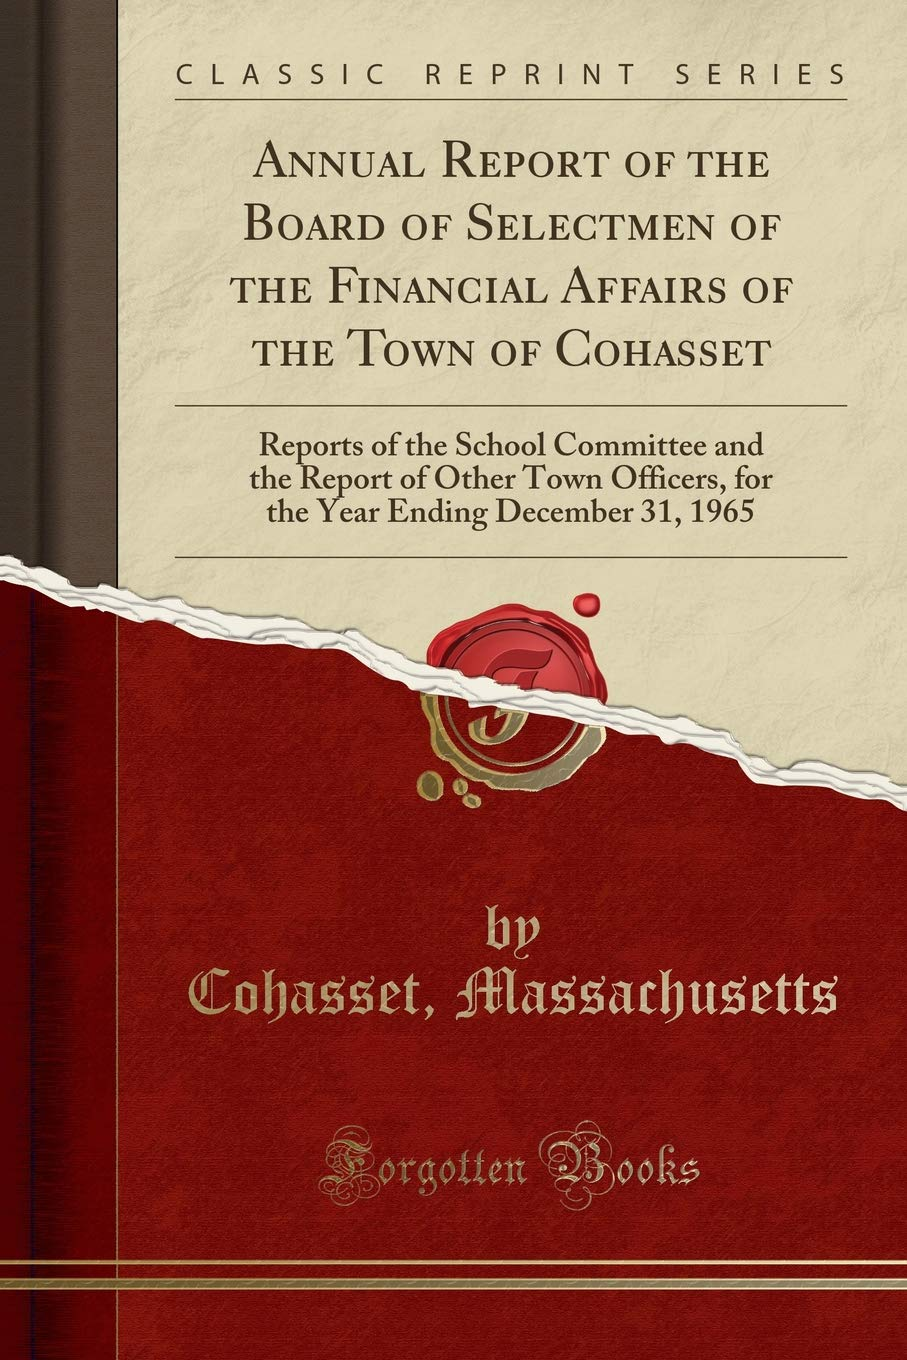 Download Annual Report of the Board of Selectmen of the Financial Affairs of the Town of Cohasset: Reports of the School Committee and the Report of Other Town ... Ending December 31, 1965 (Classic Reprint) pdf epub